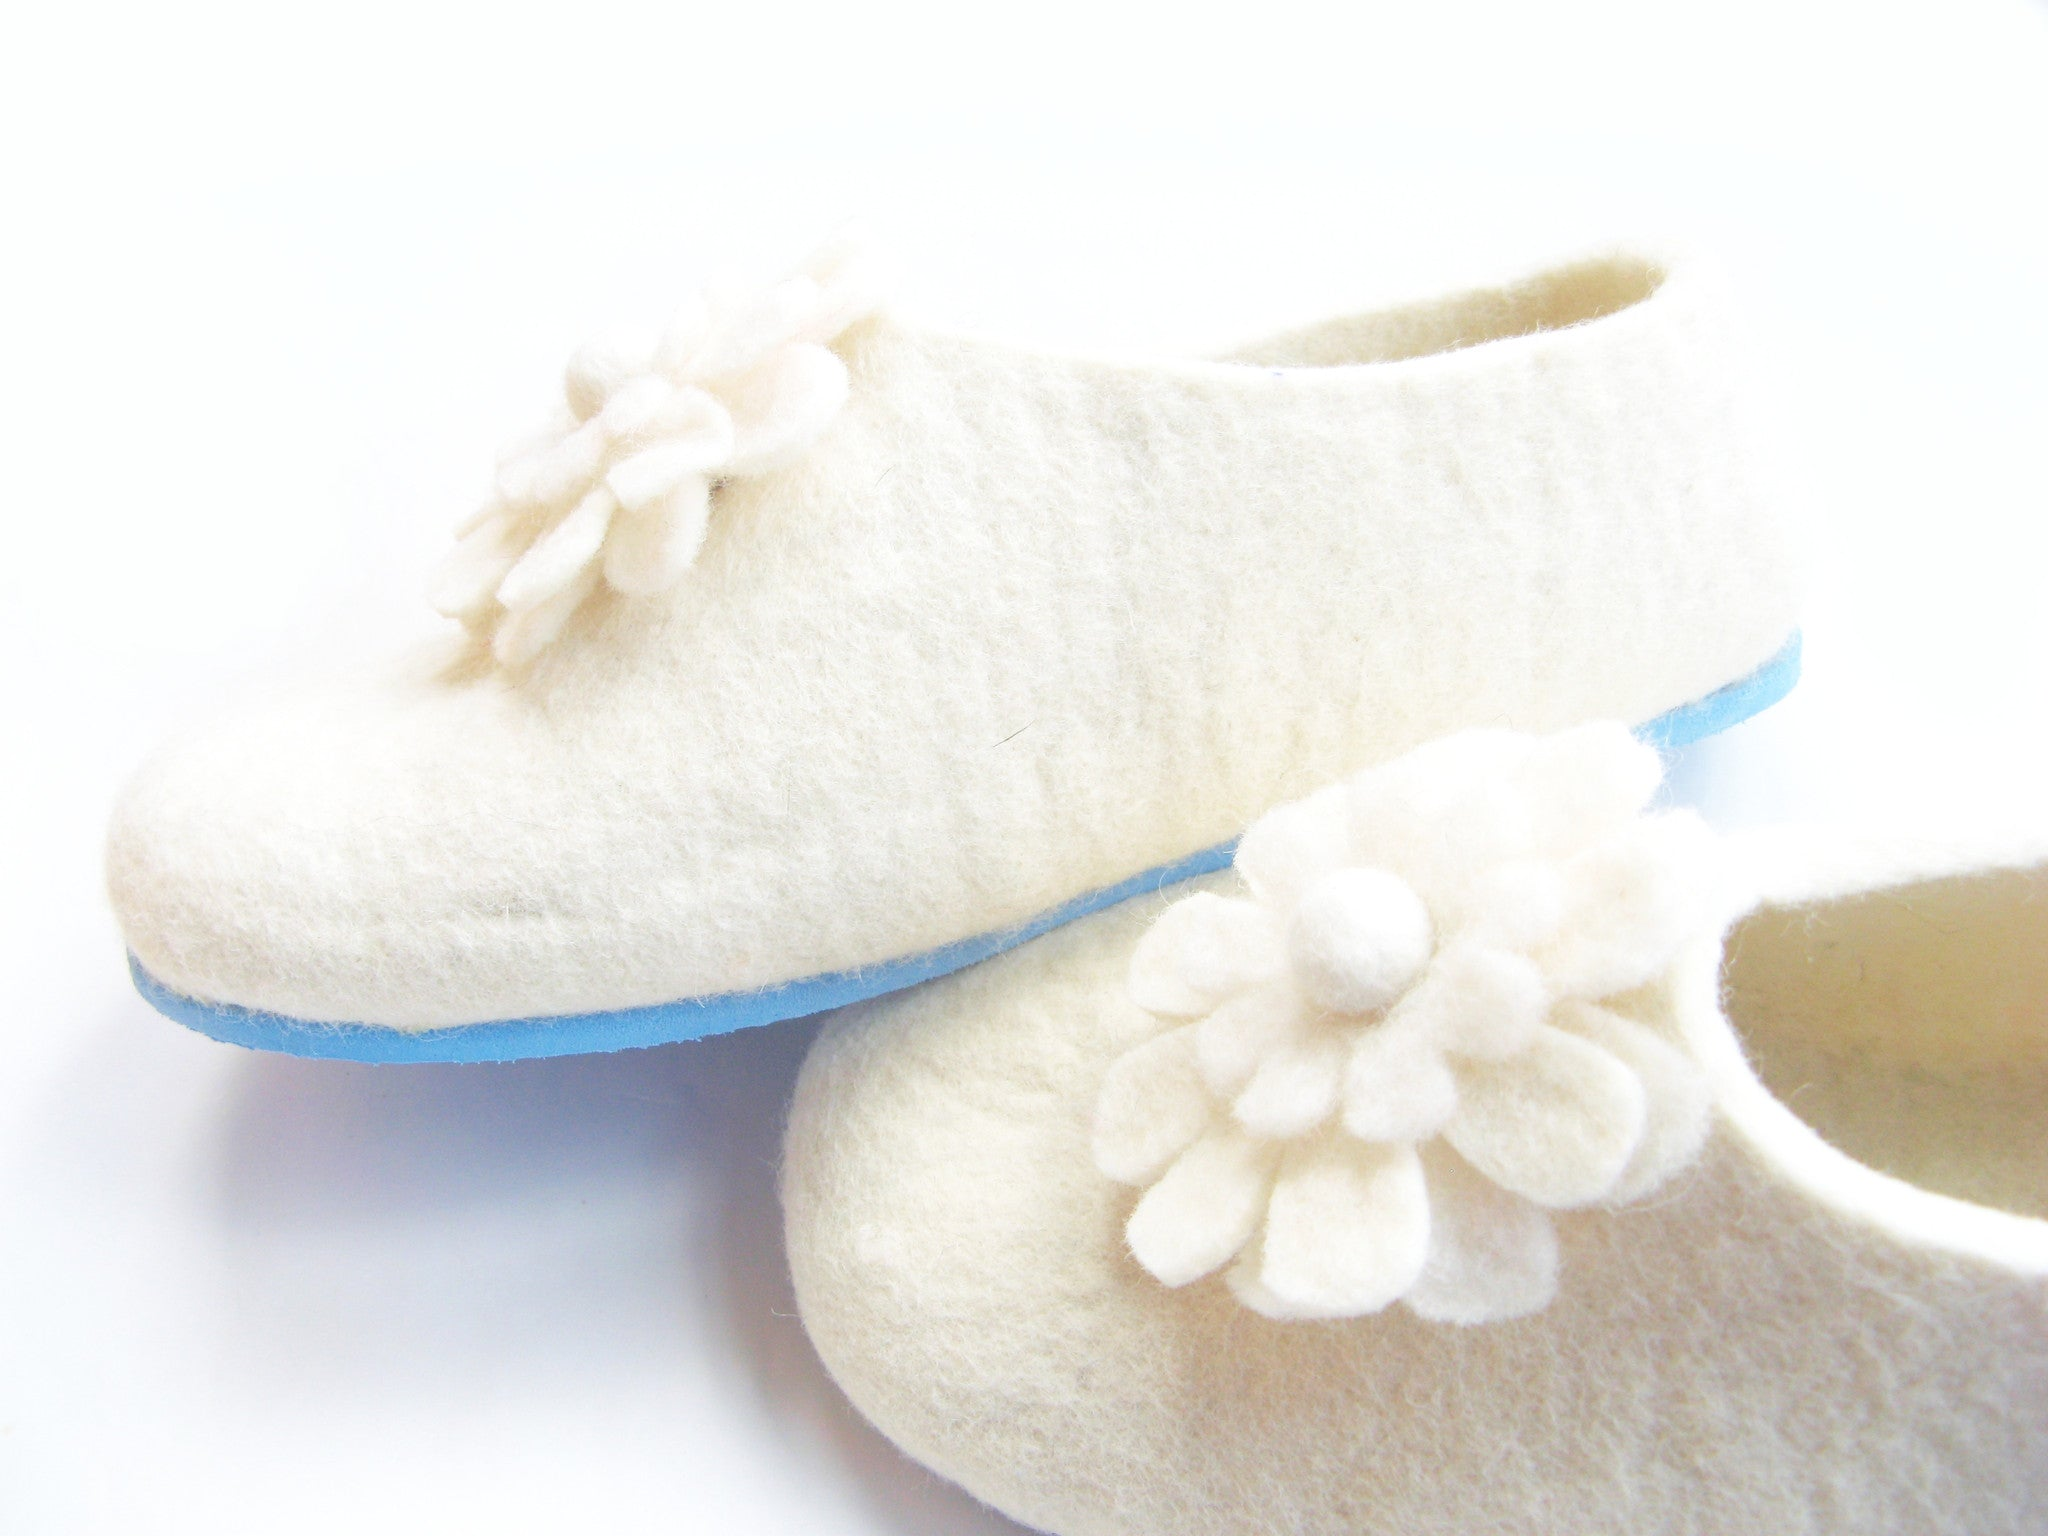 Womens Bridal Felt Slippers White Contrast Sole - Wool Walker  - 4